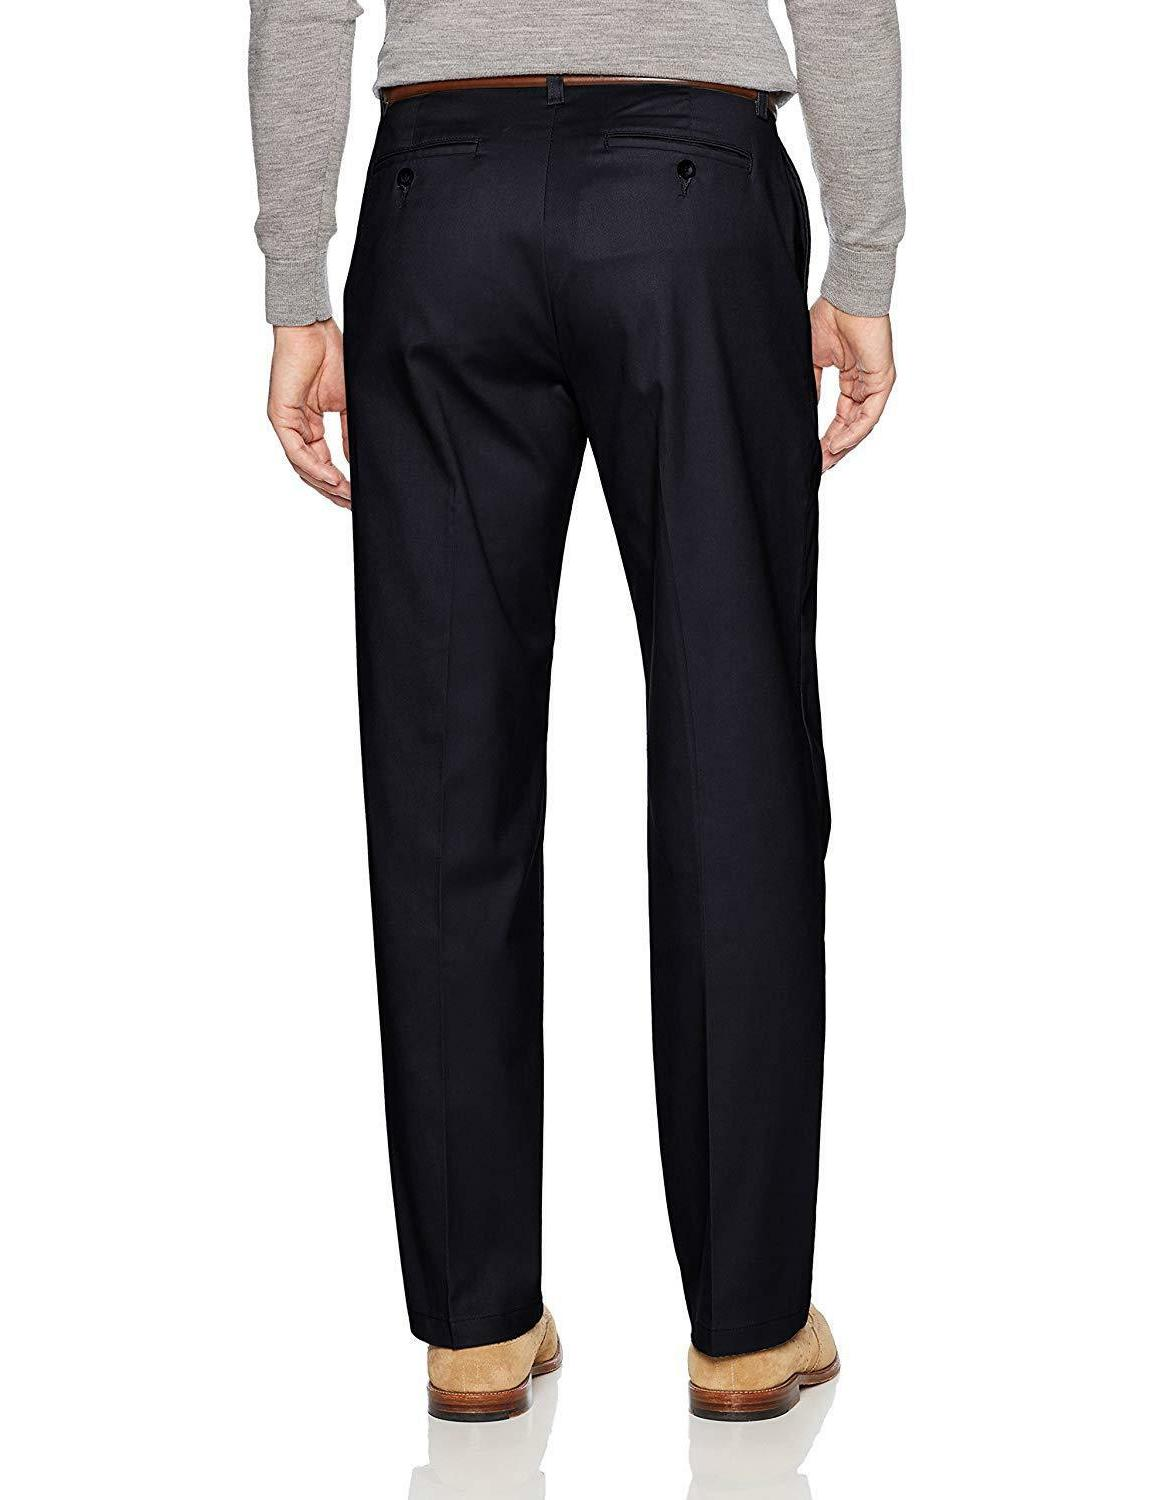 LEE Men's Total Freedom Stretch Front